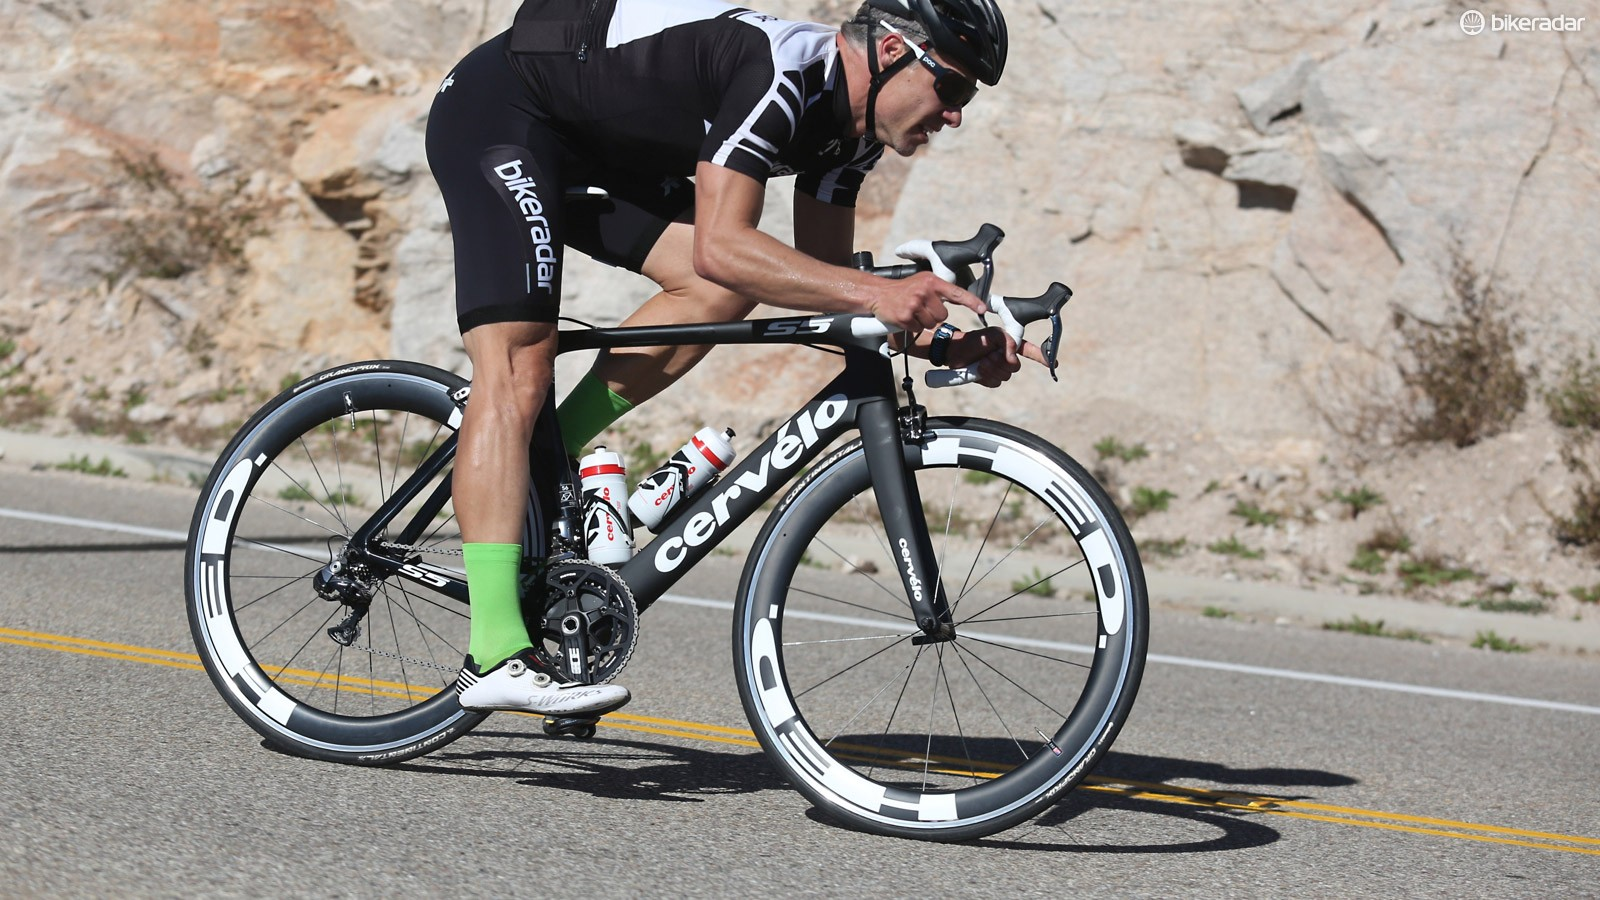 The new Cervelo S5 has markedly improved front-end handling and a lower stack than the previous iteration